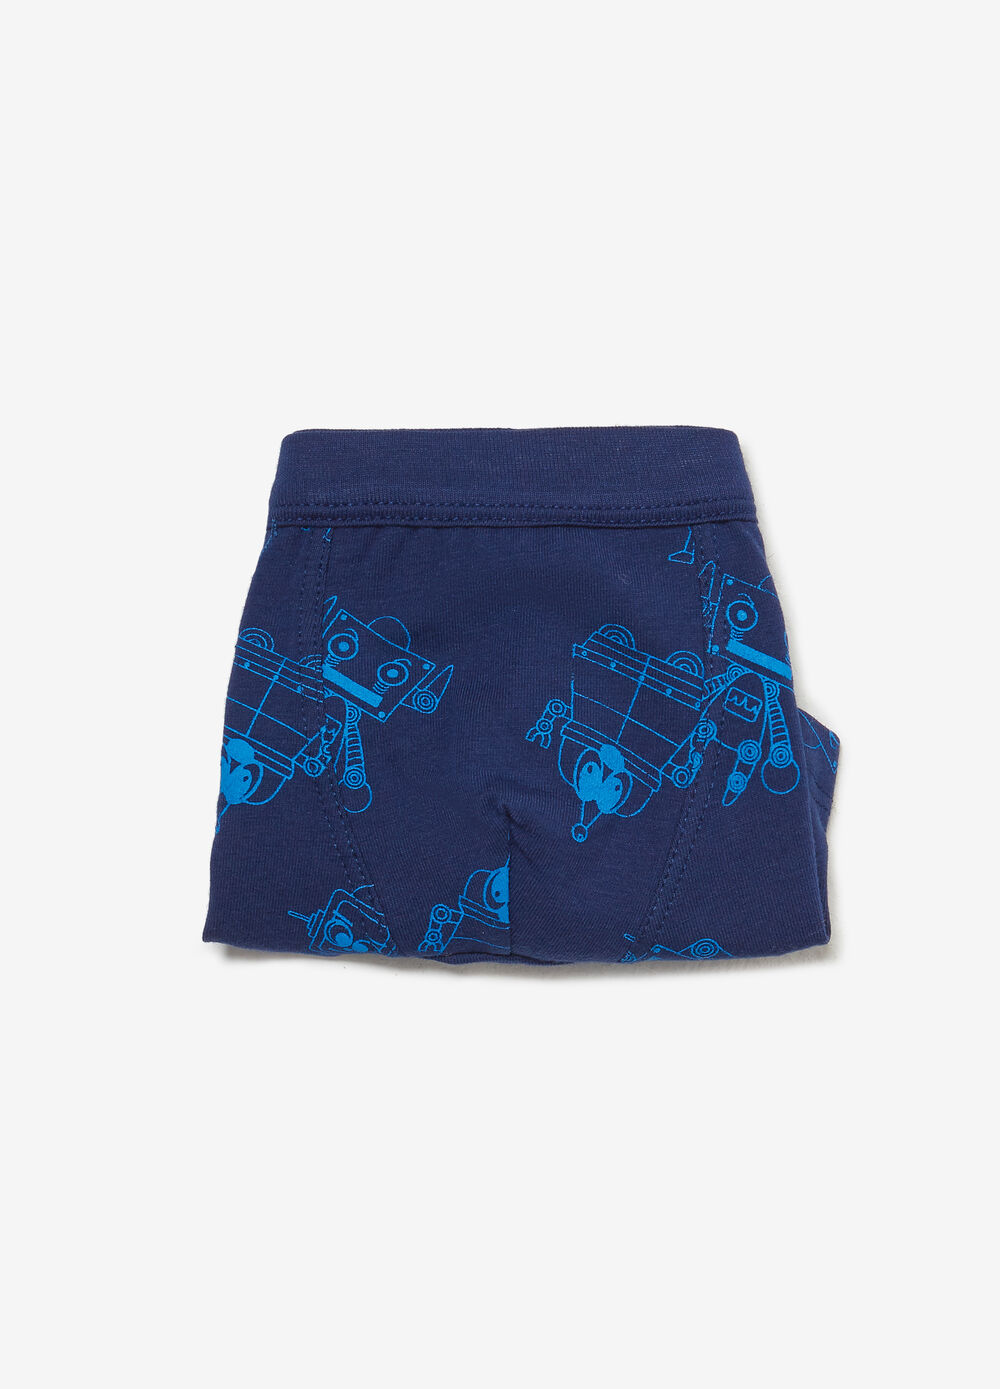 Boxer shorts in stretch cotton with robot pattern